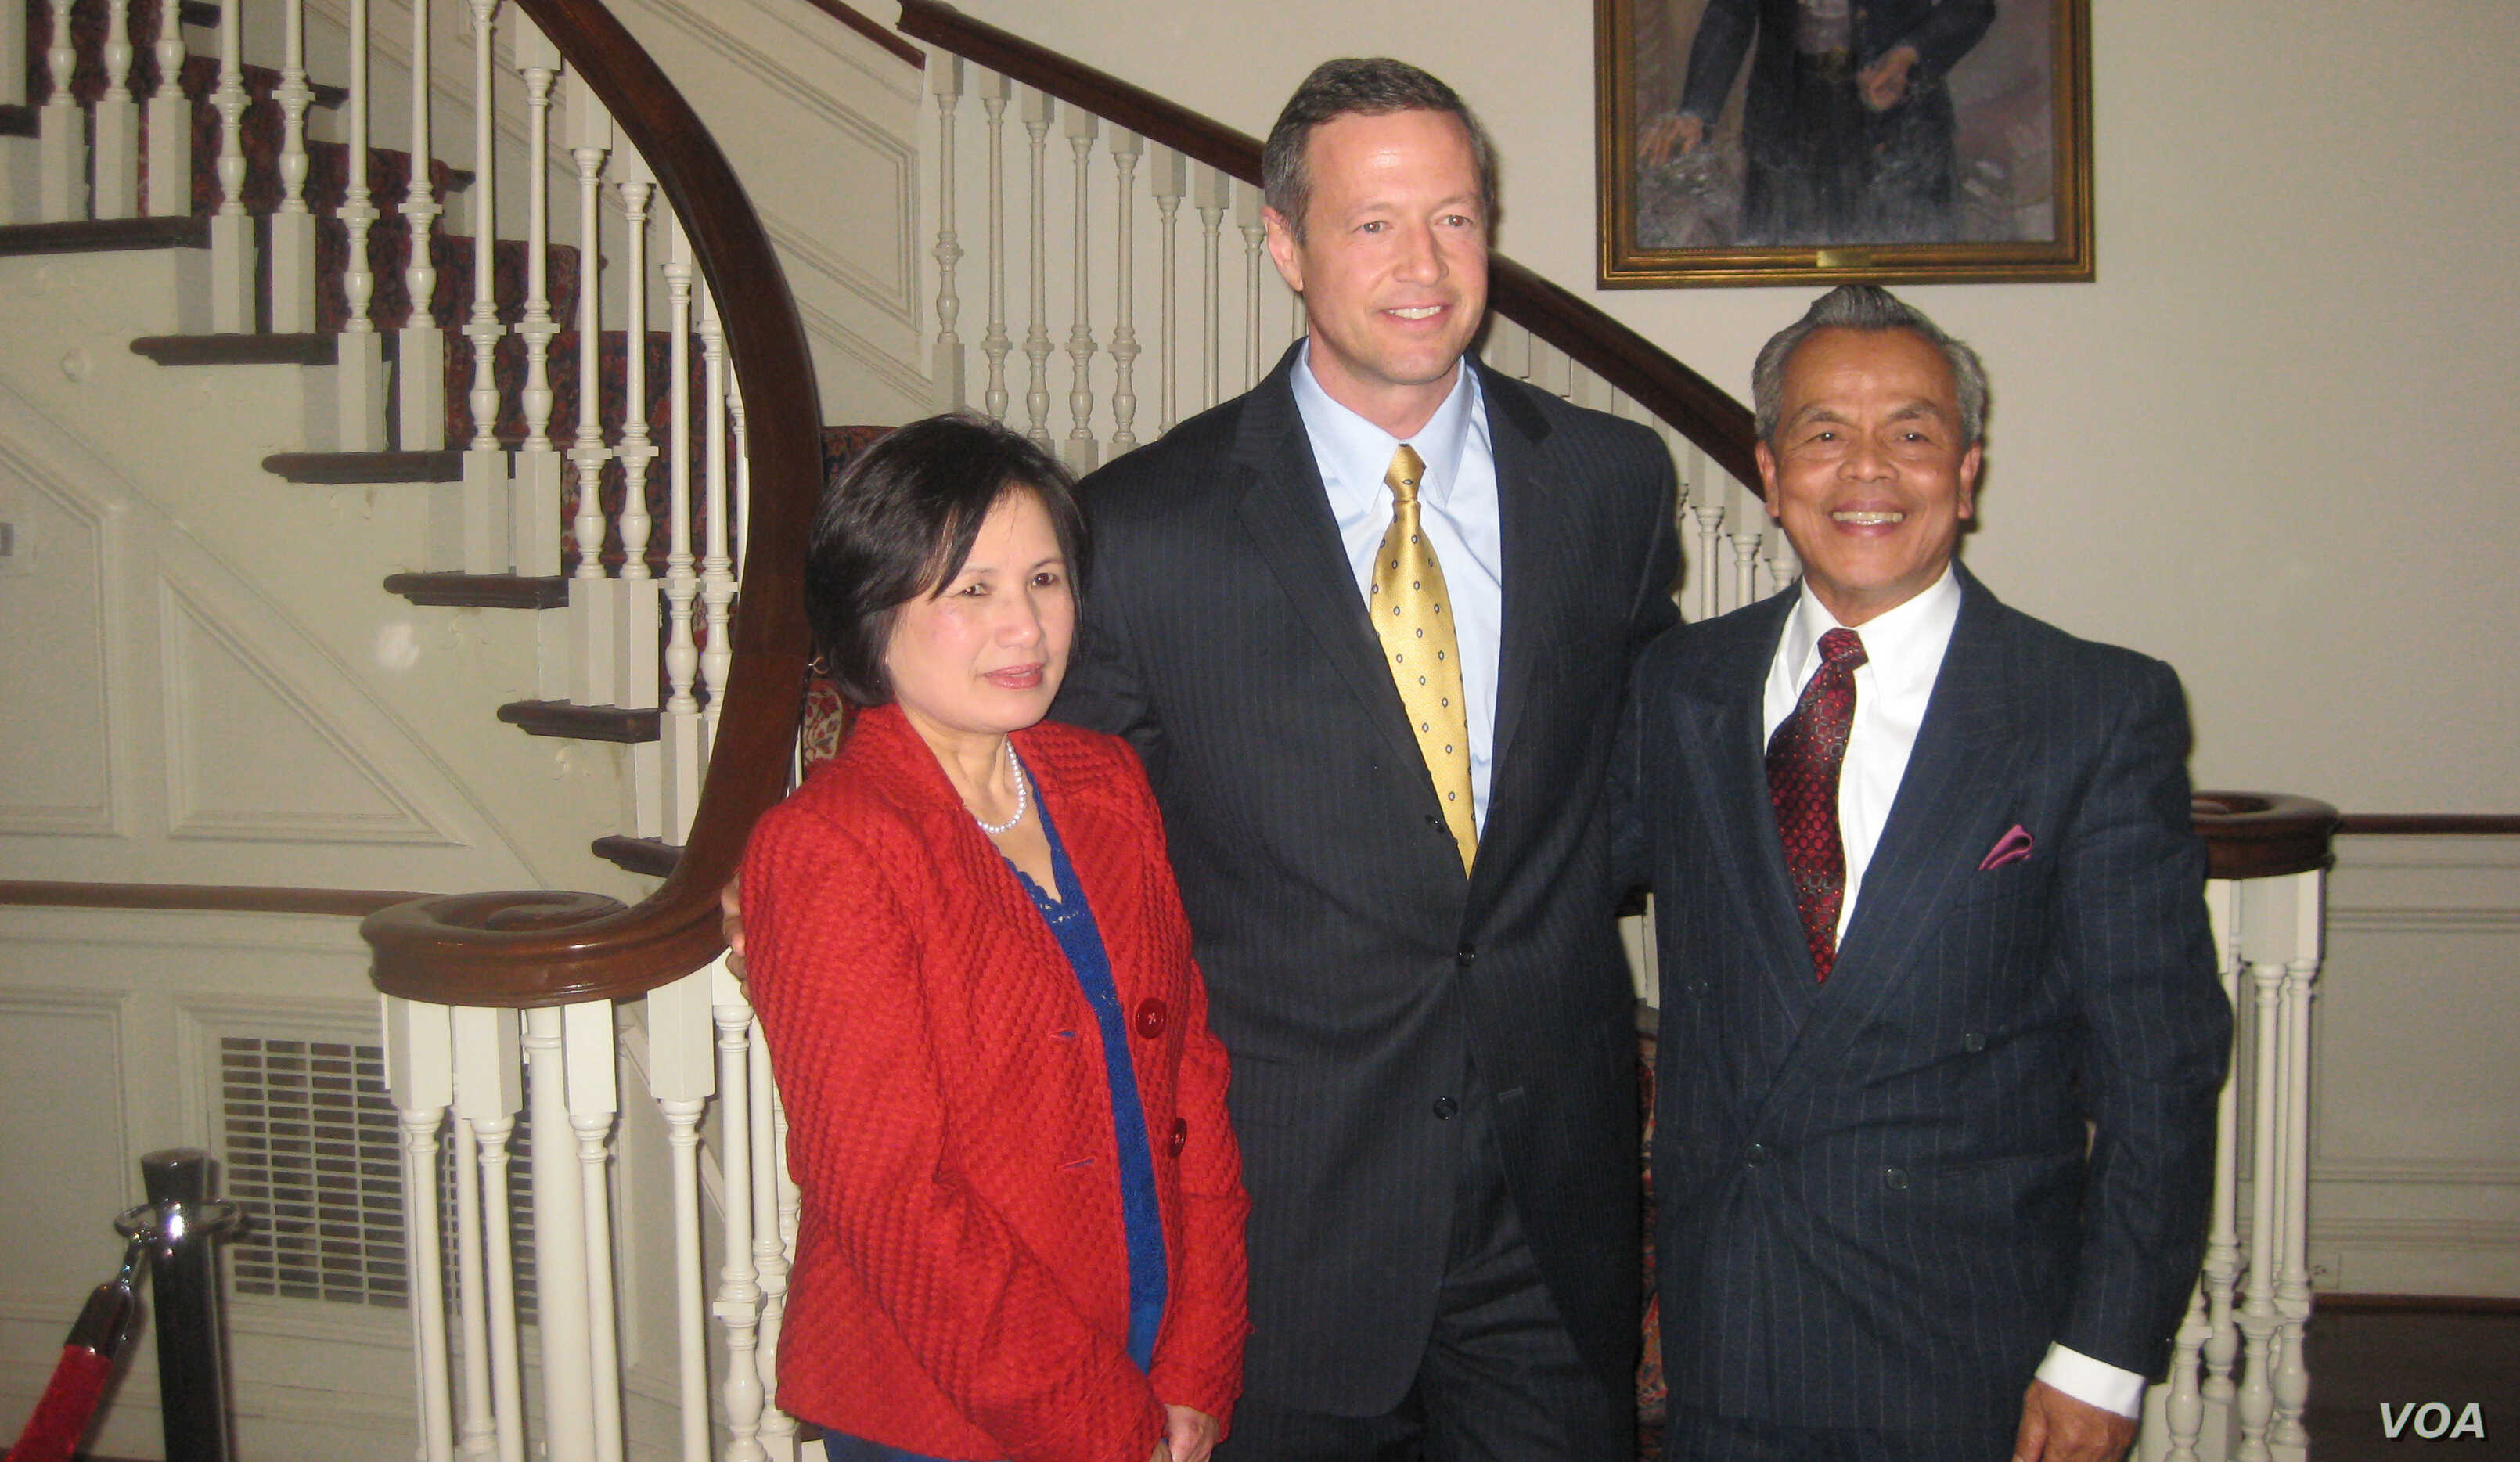 From left to right: Tun Sovan, Martin J. O'Malley, governor of Maryland, and Mrs. Ngor Yok Bean in 2012 at the Maryland Residence. (Photo courtesy: Tun Sovan)